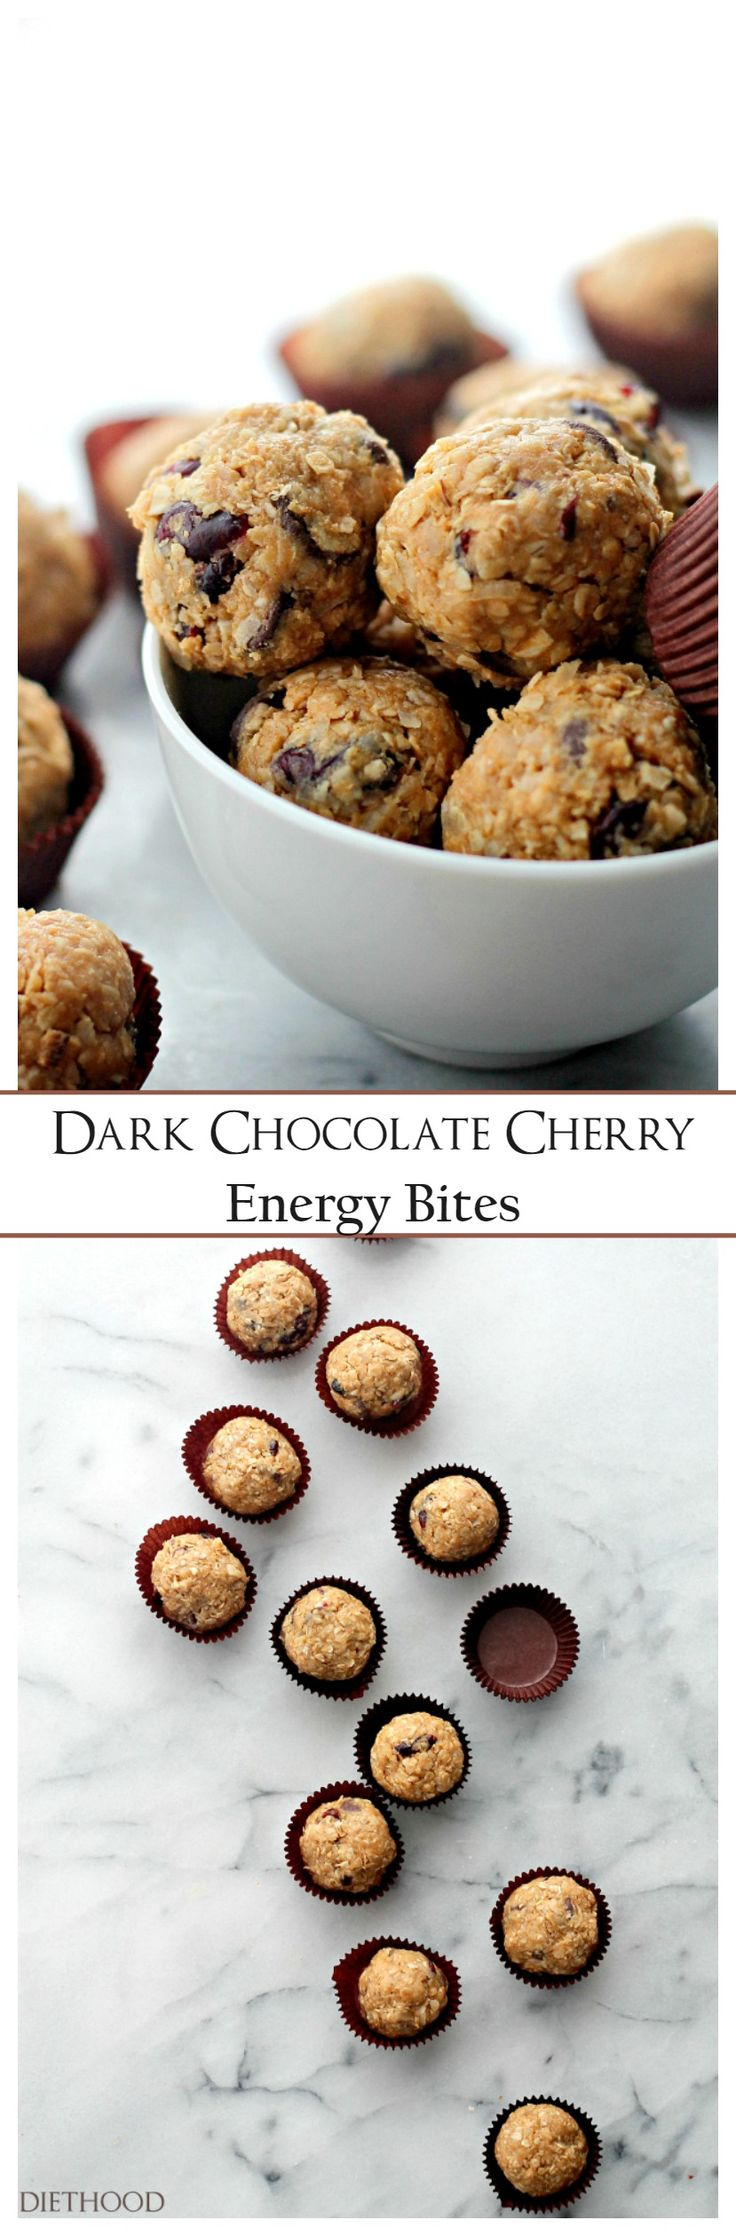 Dark Chocolate Cherry Energy Bites | www.diethood.com | Loaded with dark chocolate chips and dried cherries, these healthy cookie energy bites are sweet, delicious, and incredibly easy to make! AND you don't have to bake!